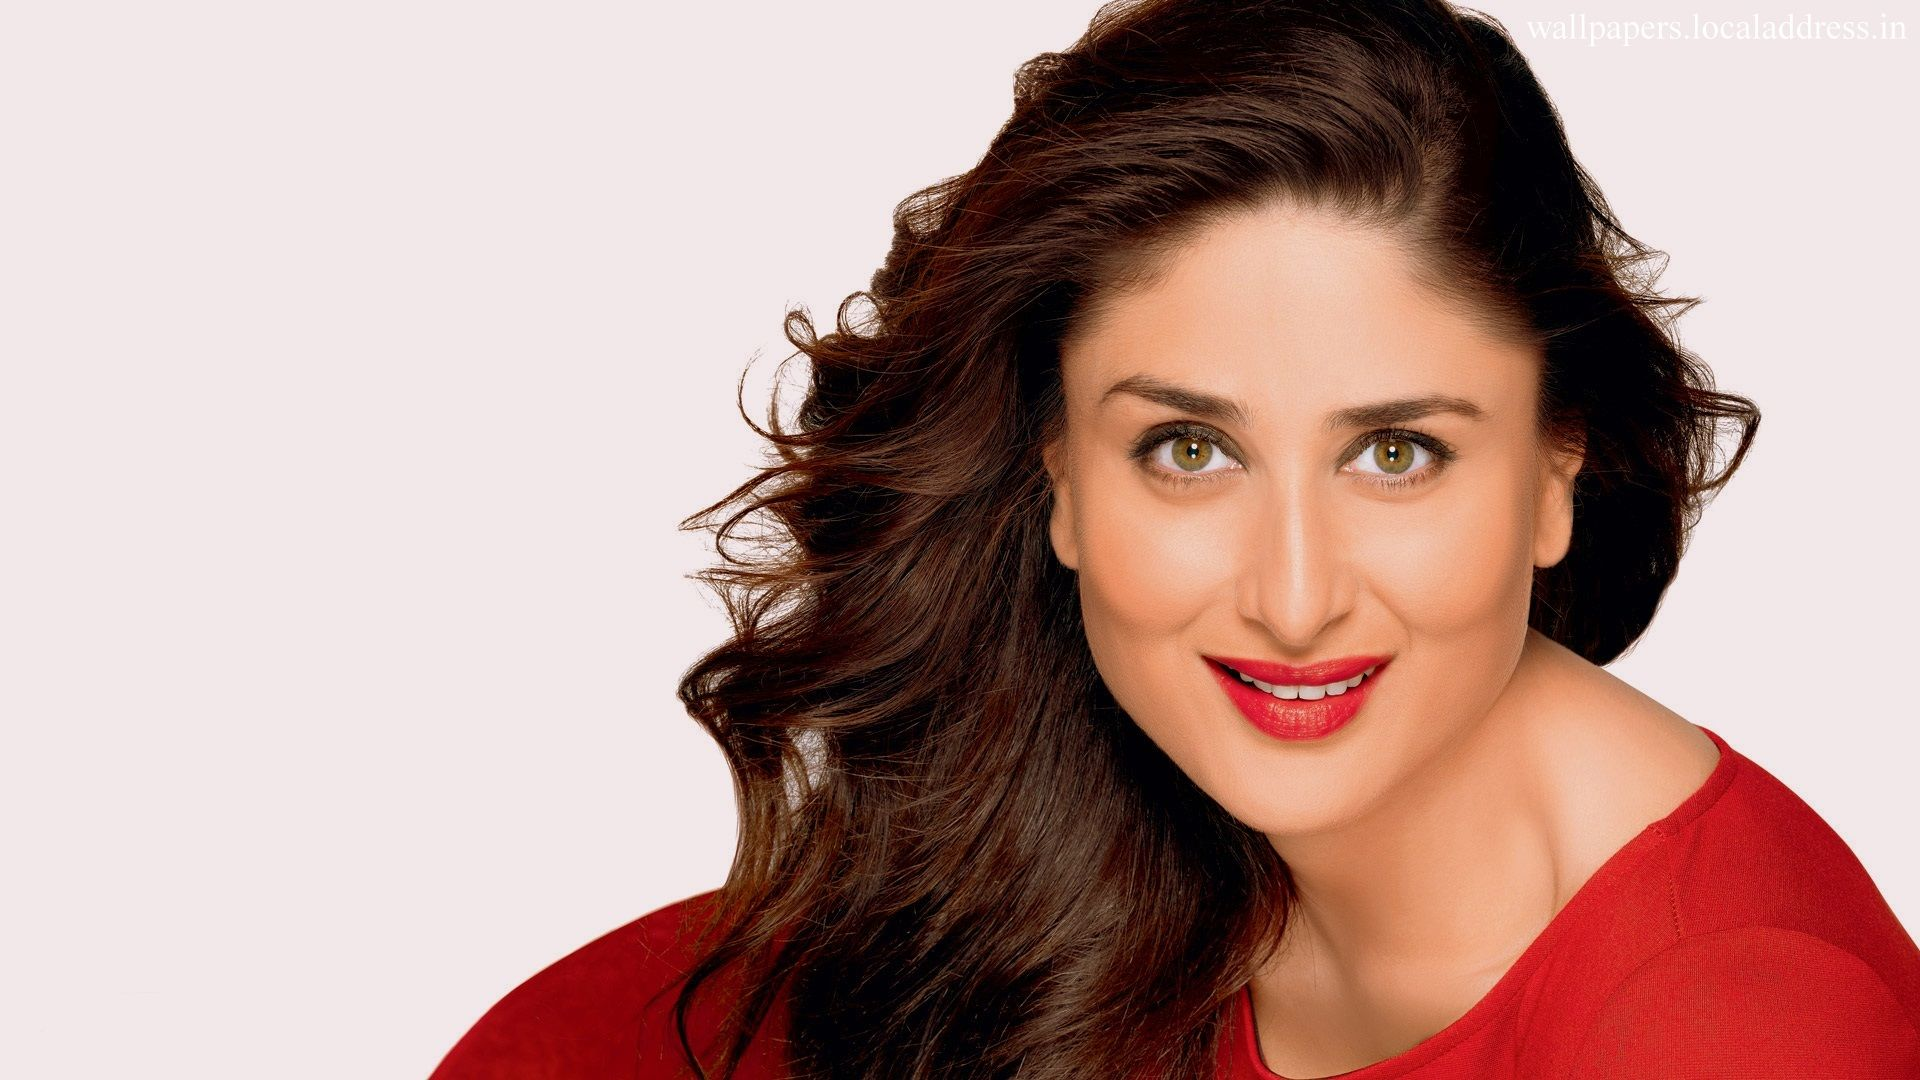 kareena kapoor wallpapers collection for free download | hd